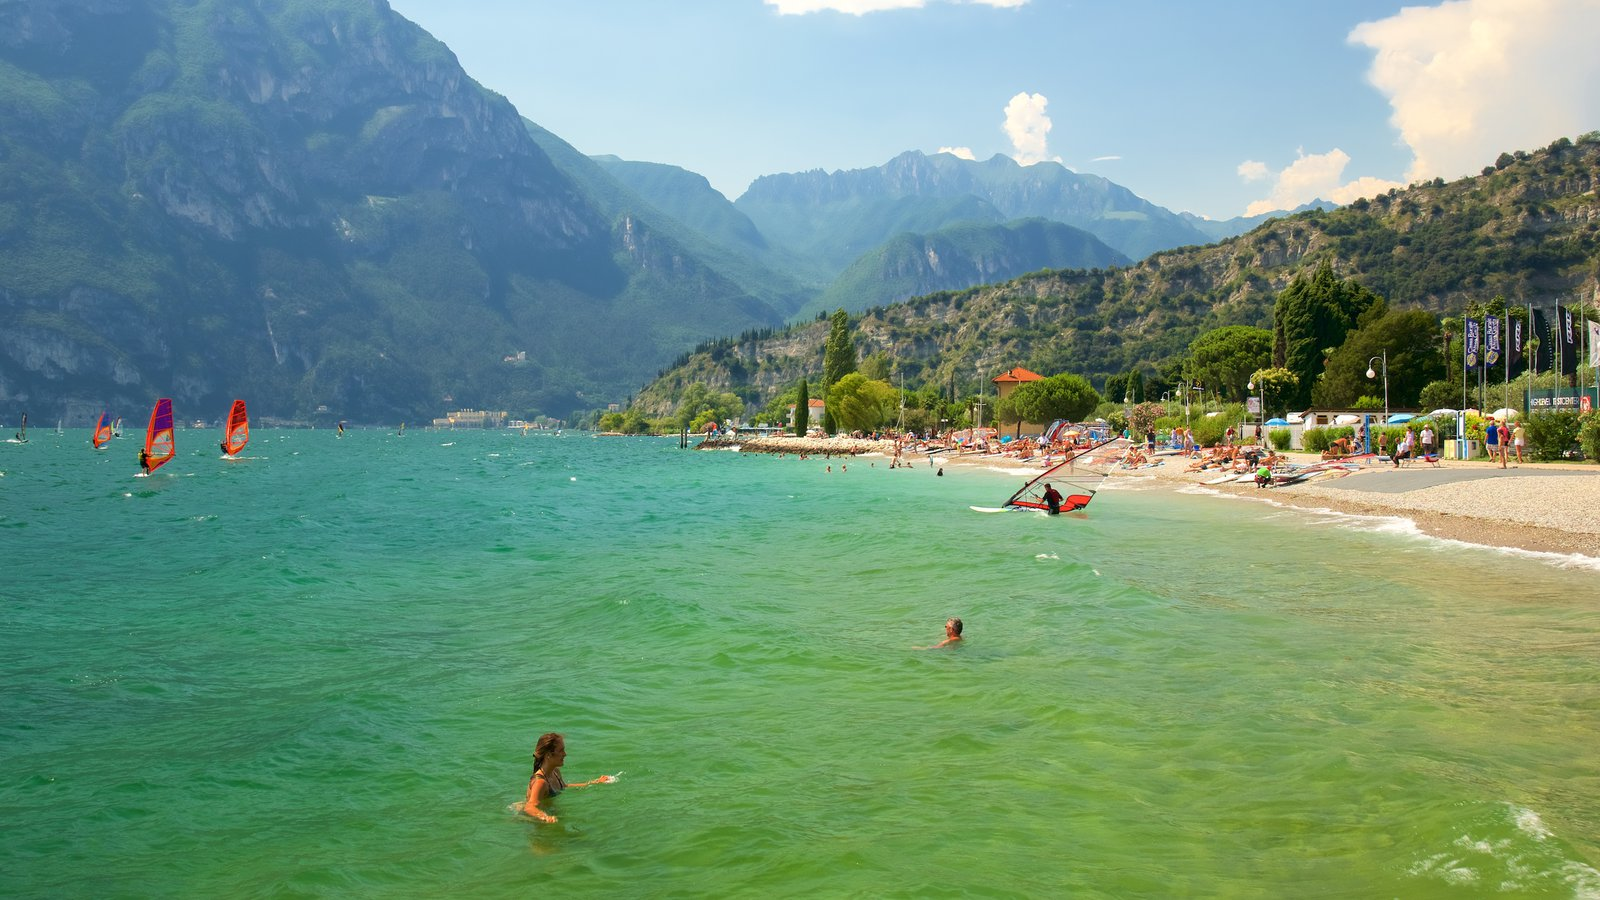 Nago-Torbole featuring swimming, general coastal views and windsurfing